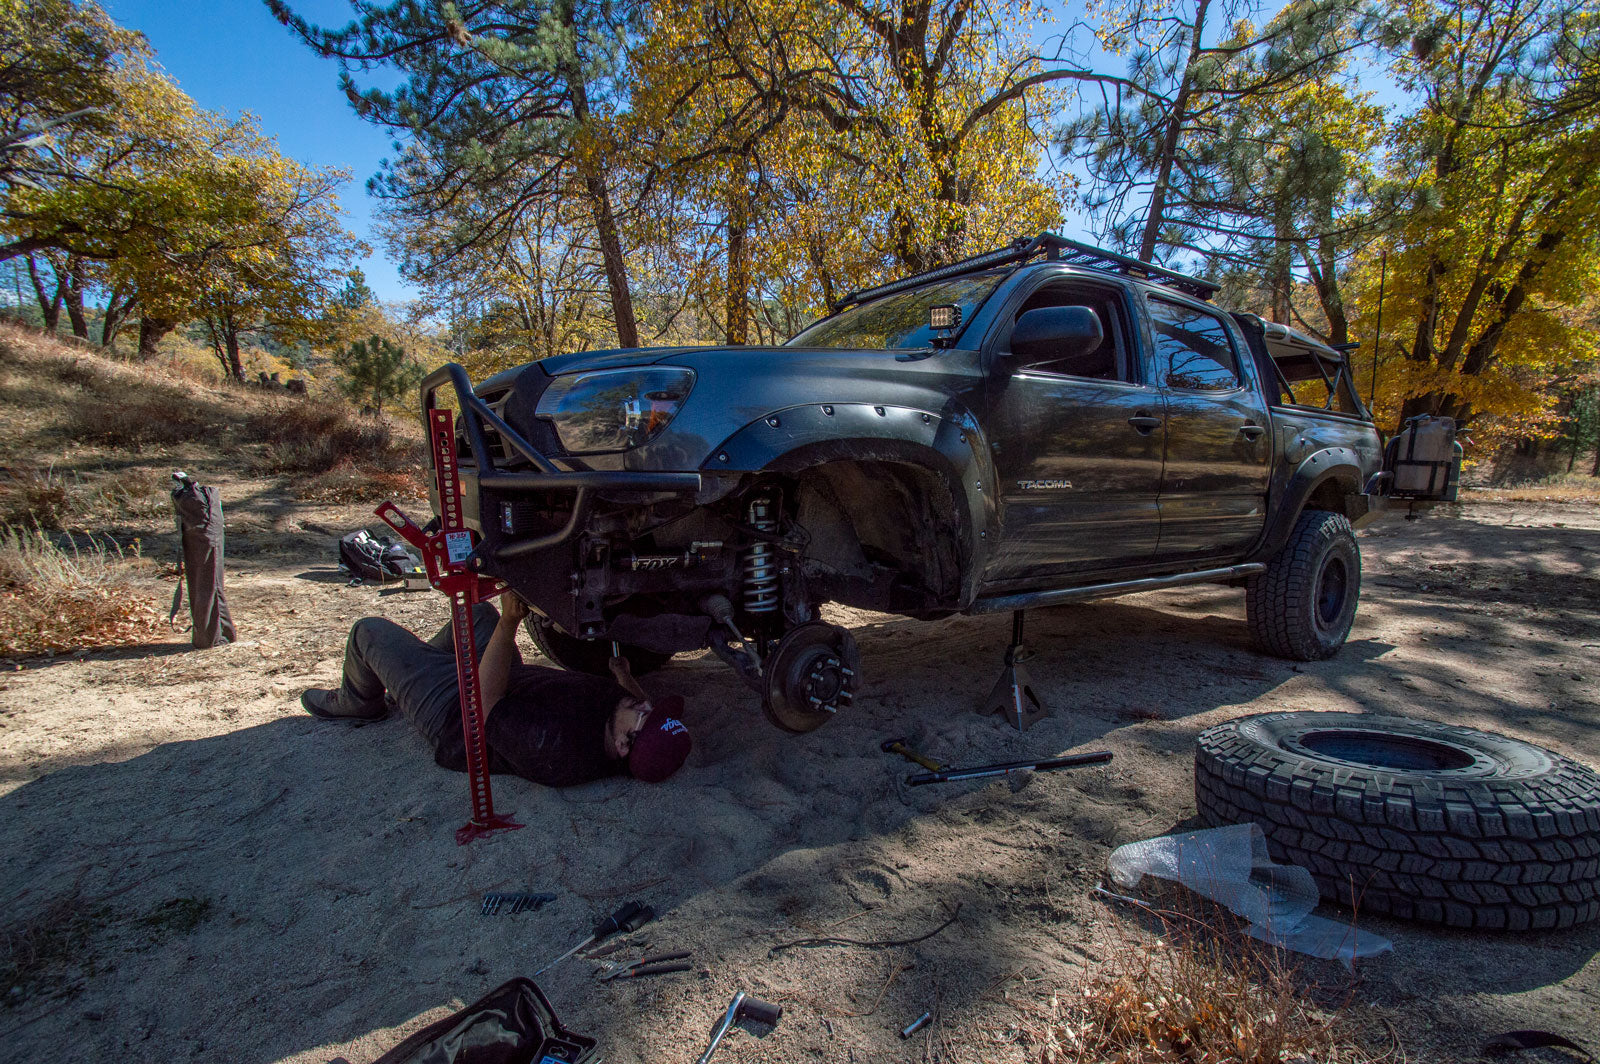 Offroad Surgery on Pilot Rock Trail - FOX 2 5 DSC Takes Over